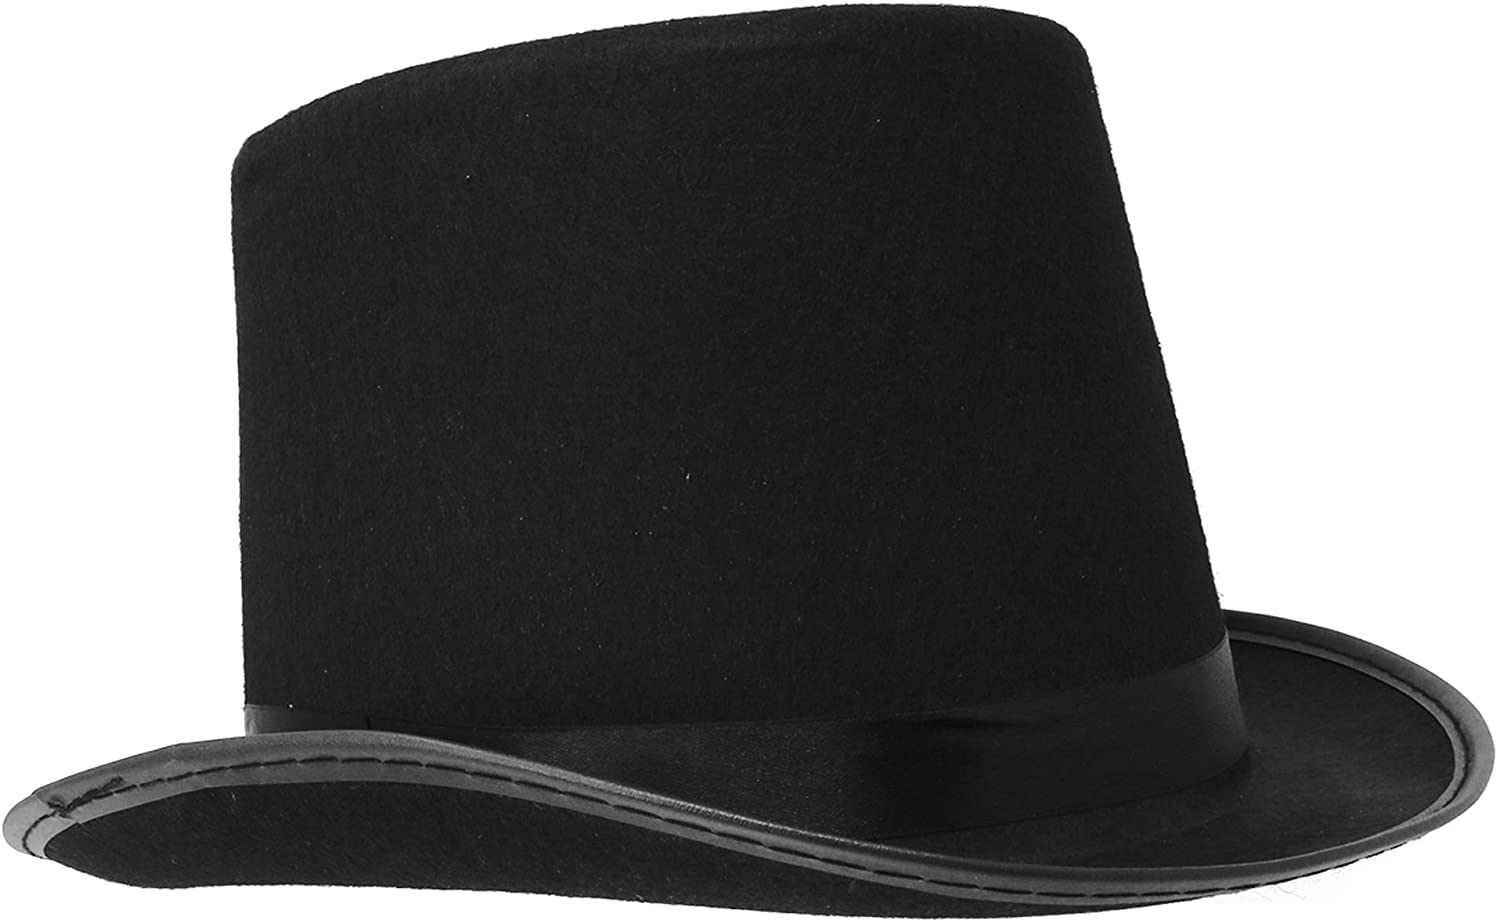 Magician Kids Adult Steampunk Tall Hat Top Costume Magic Party Performing Black